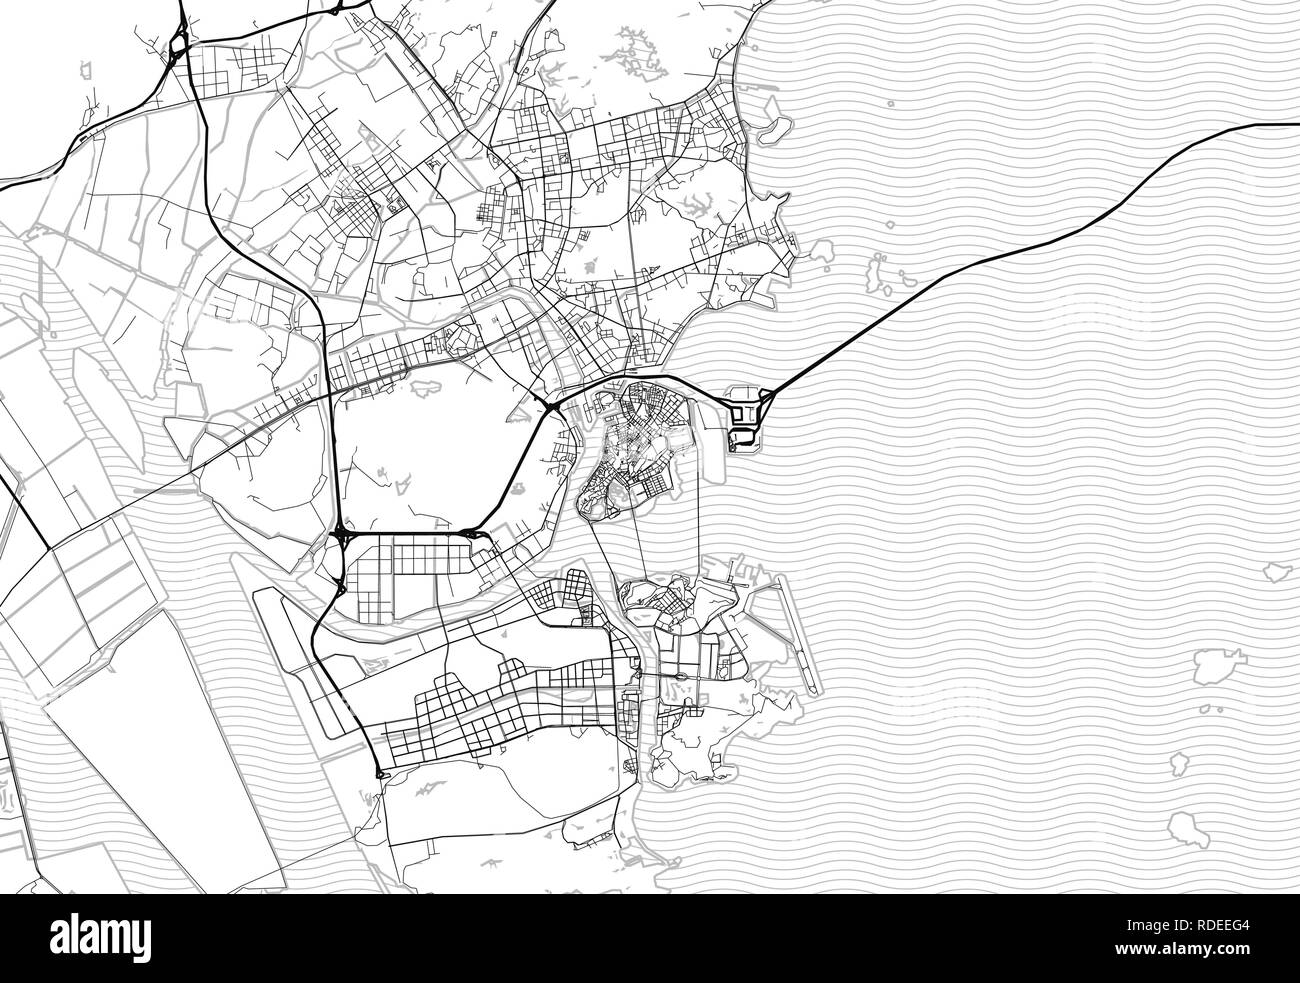 Area map of Zhuhai, China. This artmap of Zhuhai contains geography lines for land mass, water, major and minor roads. - Stock Image